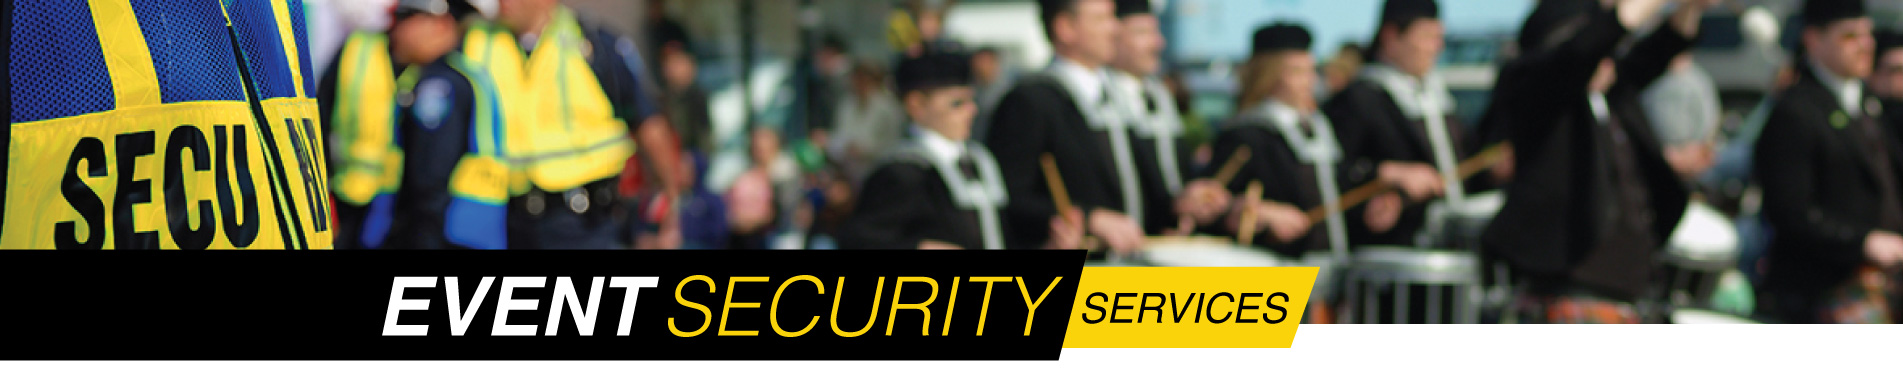 Houston area event security services